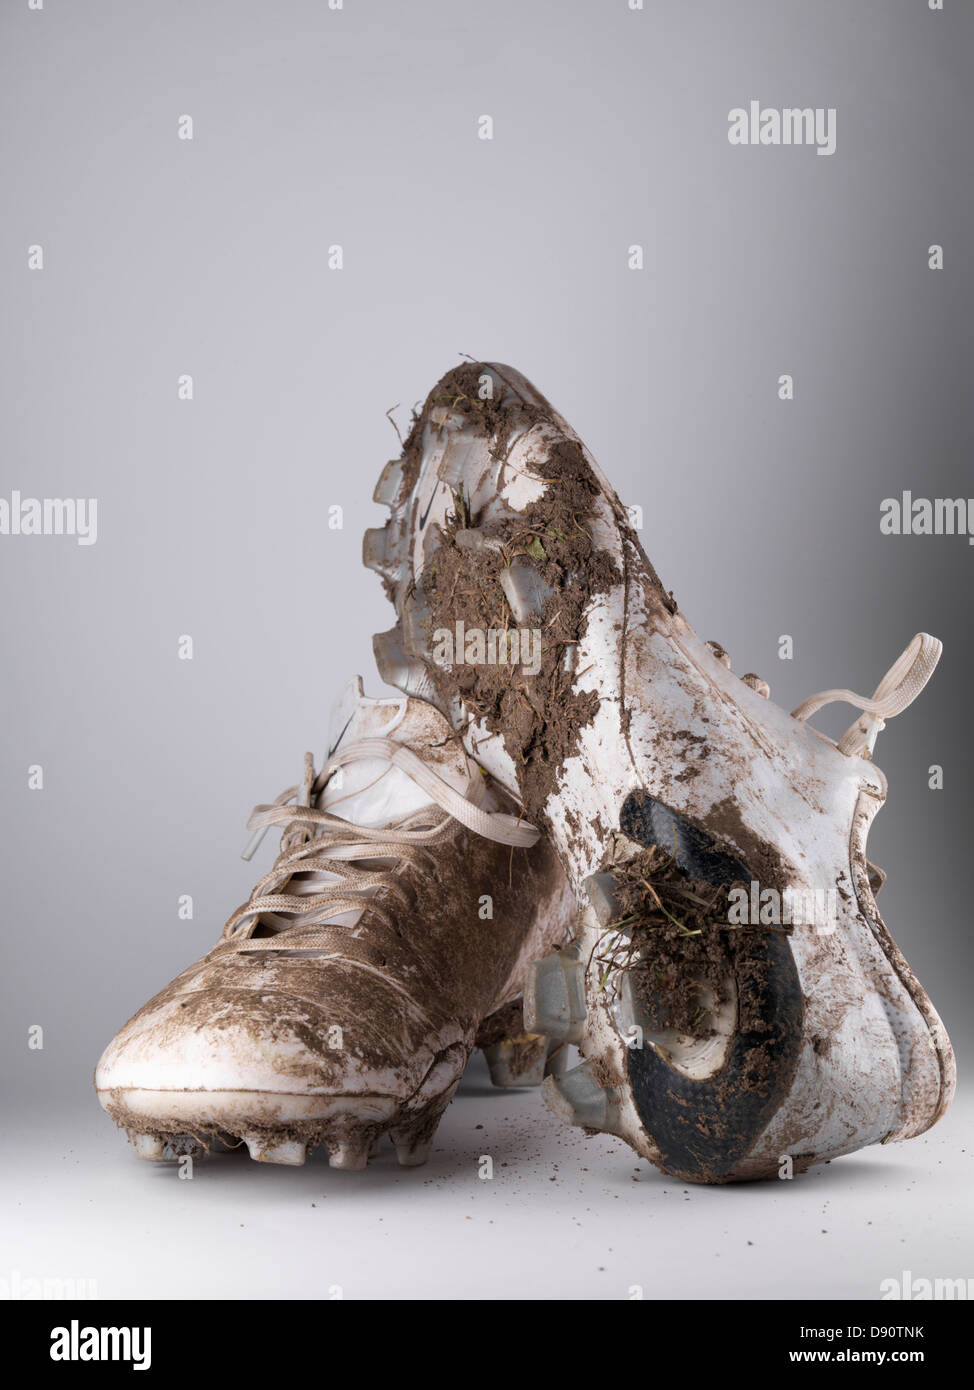 on sale 13559 36811 Close up of pair of dirty soccer shoes